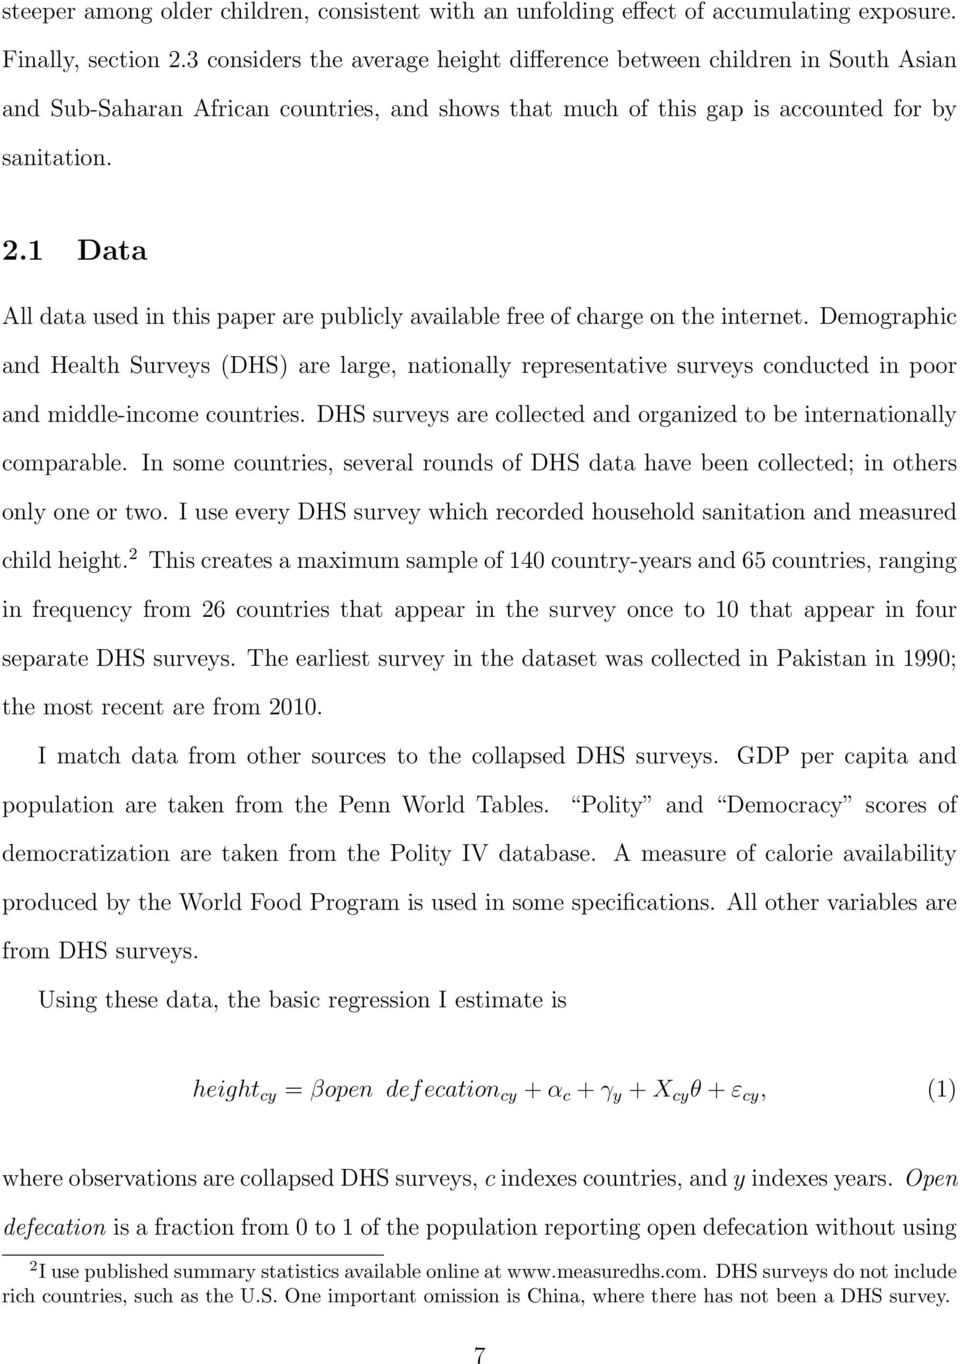 1 Data All data used in this paper are publicly available free of charge on the internet.